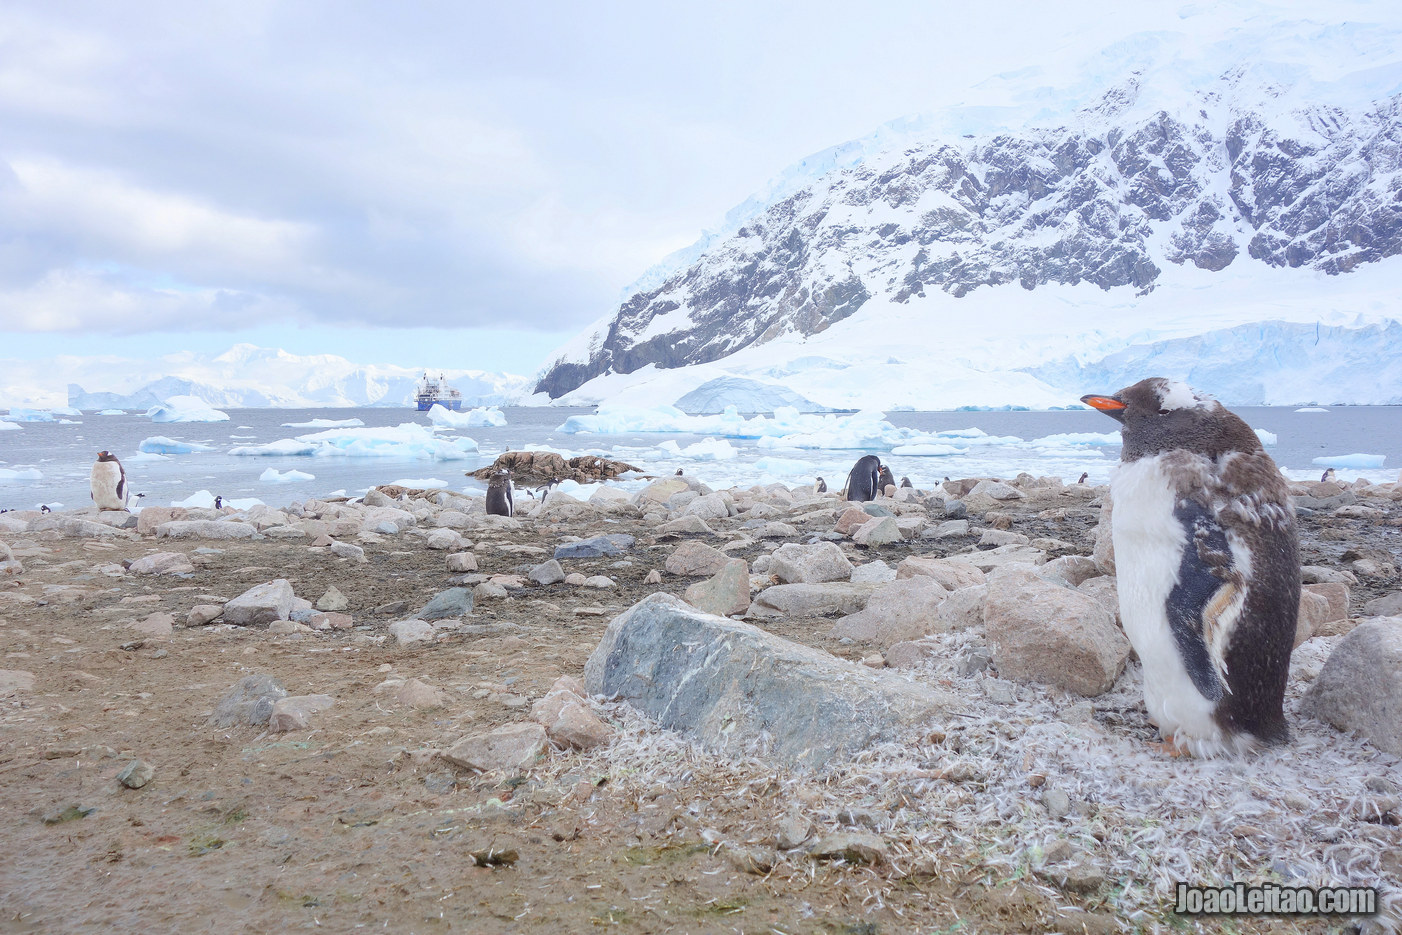 Visit Neko Harbour in Artarctica